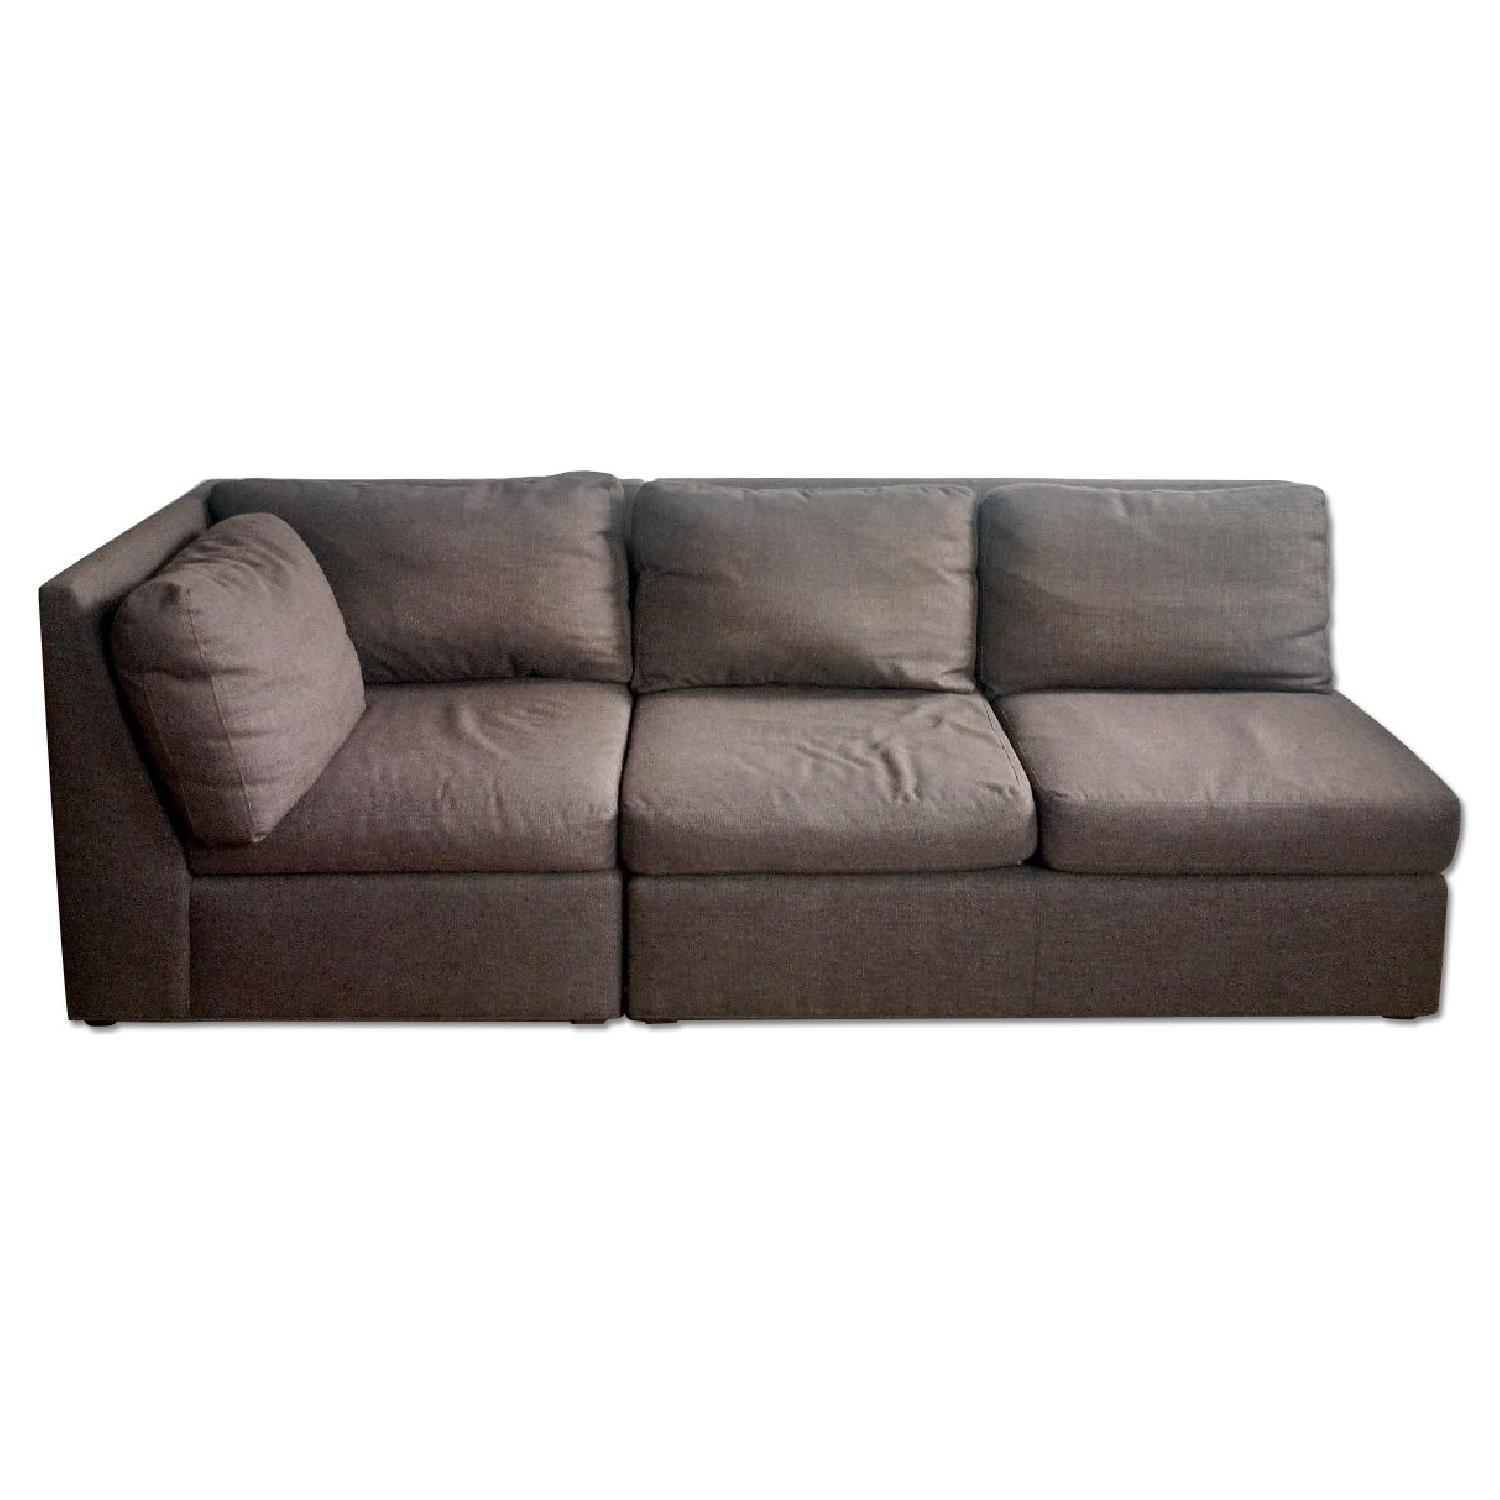 Crate & Barrel City Two-Piece Sectional - image-0